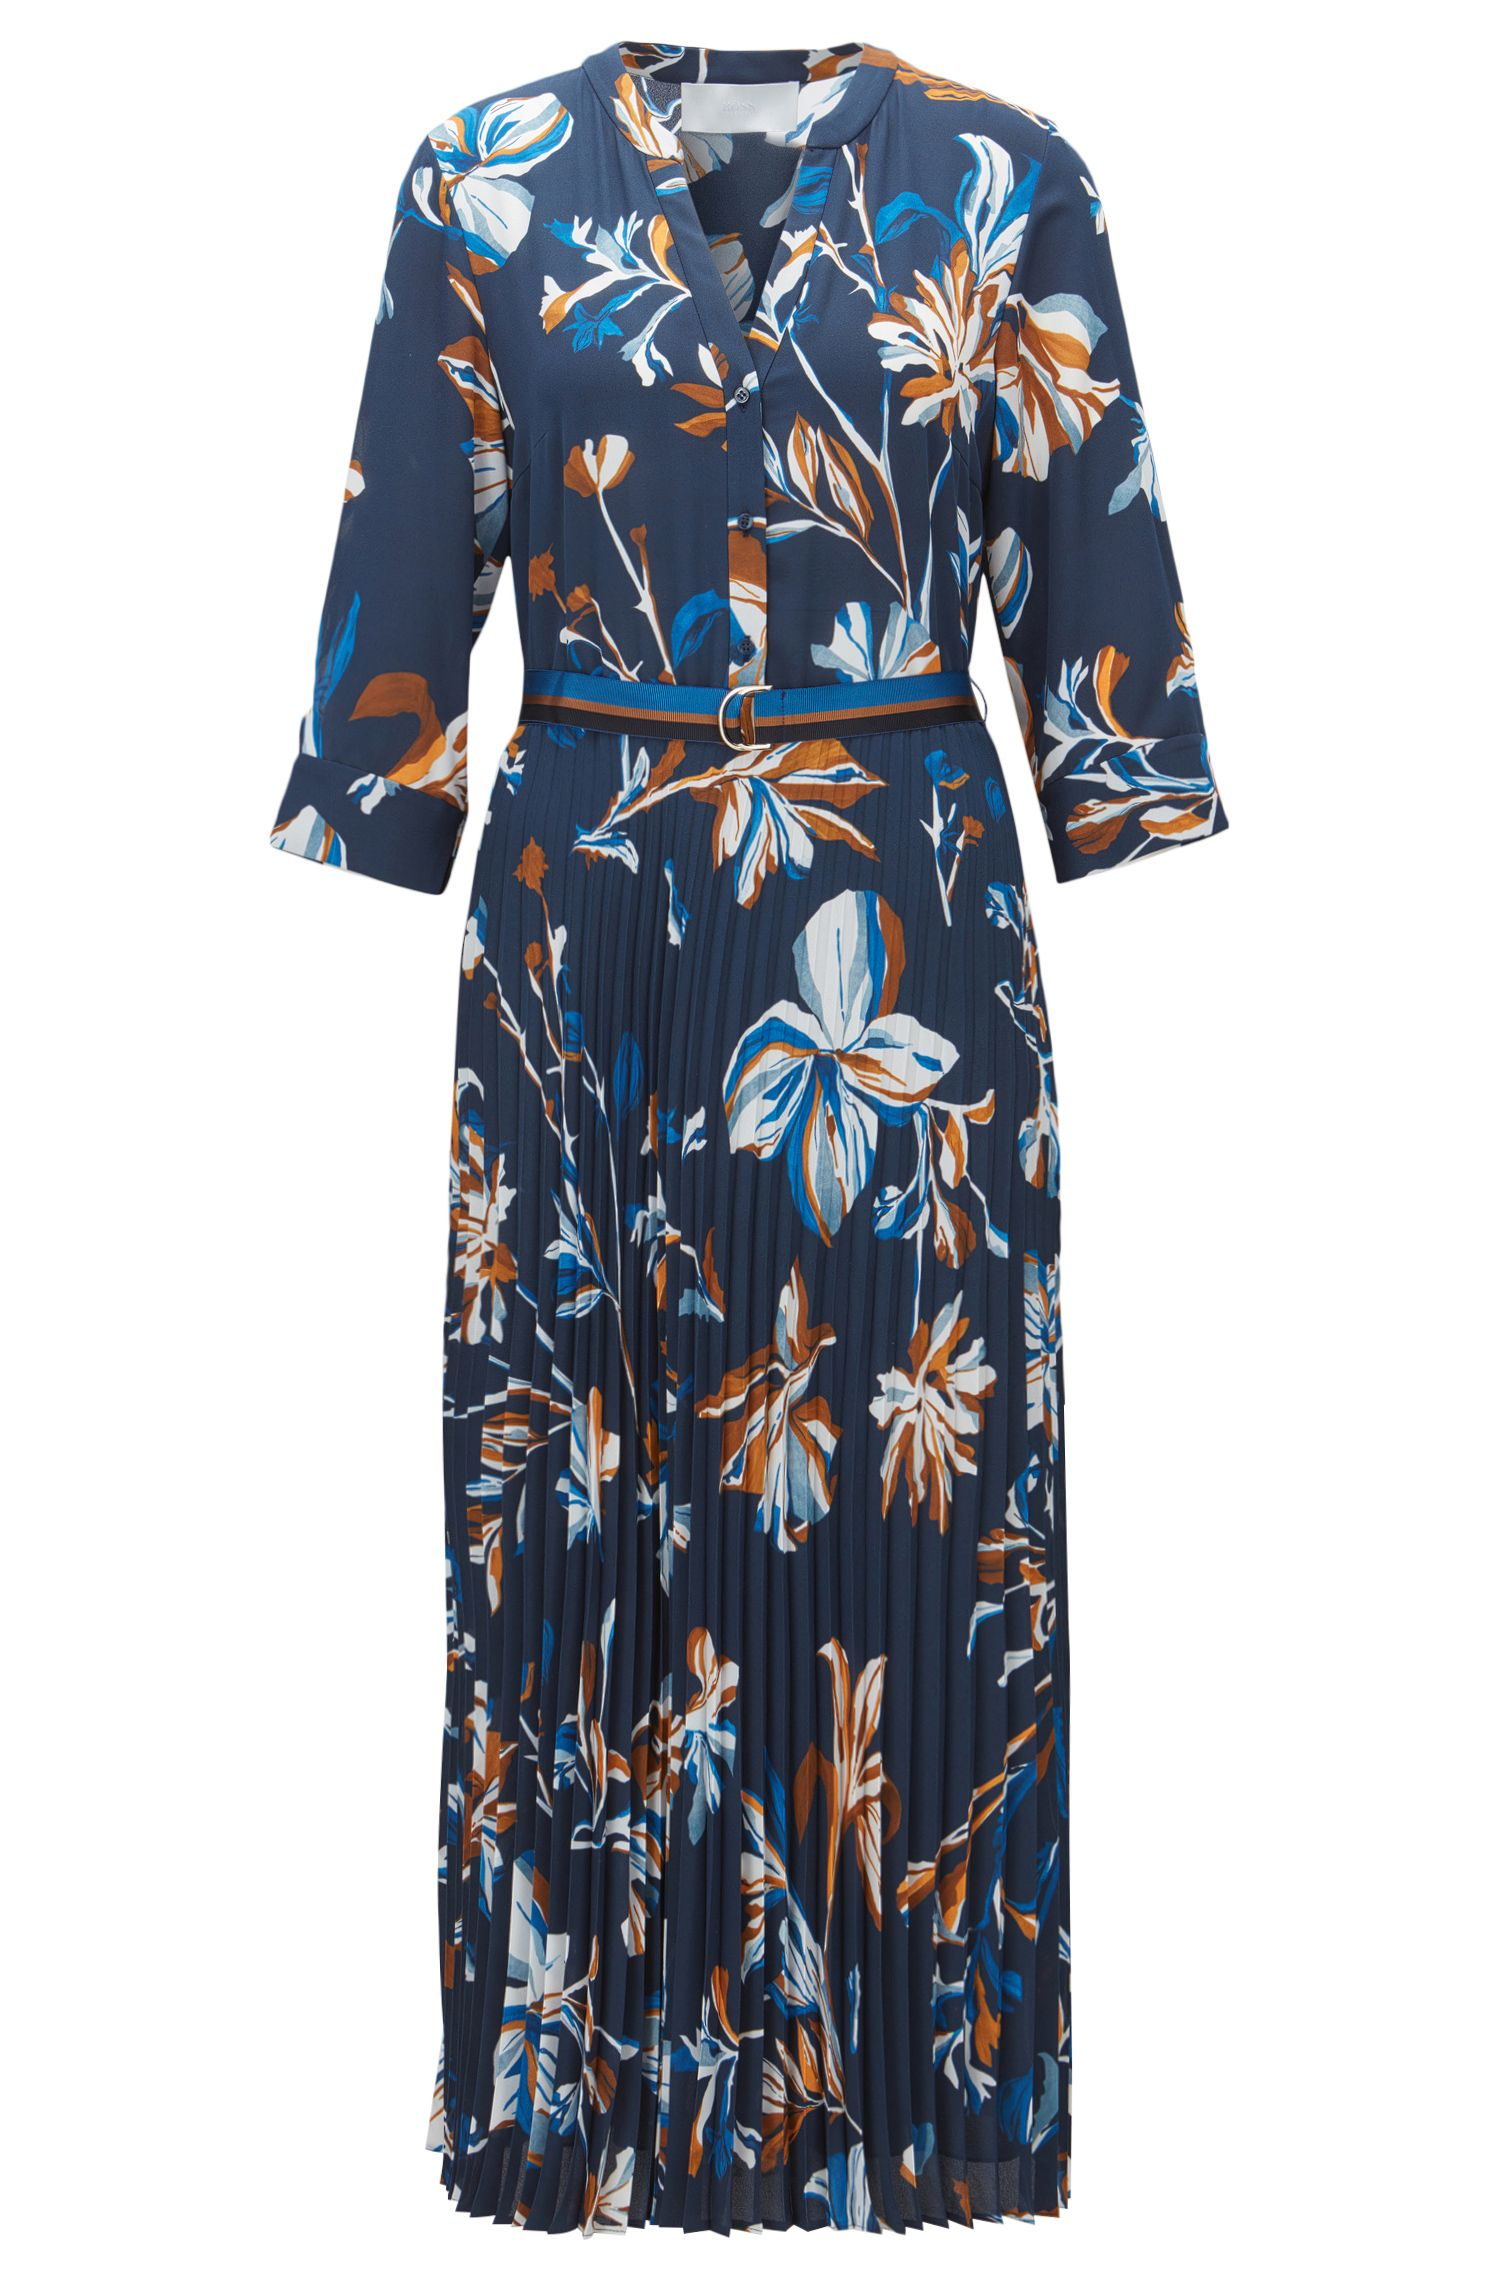 Floral Crepe Pleated Dress | Diplisa, Patterned